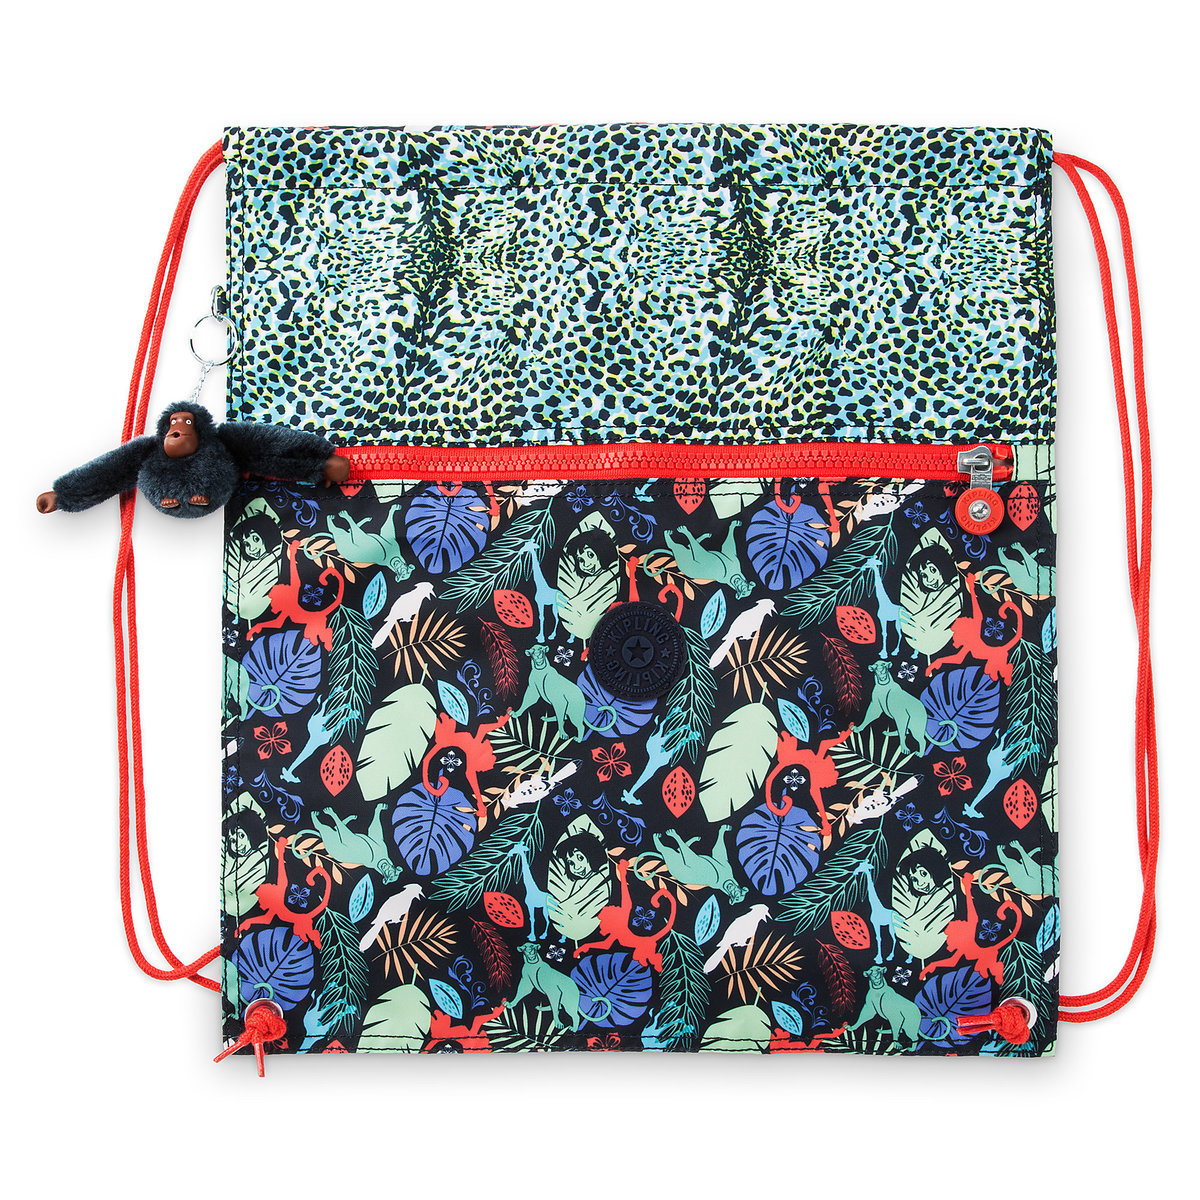 755a8e633d1 Product Image of Jungle Book Sling Bag by Kipling   1